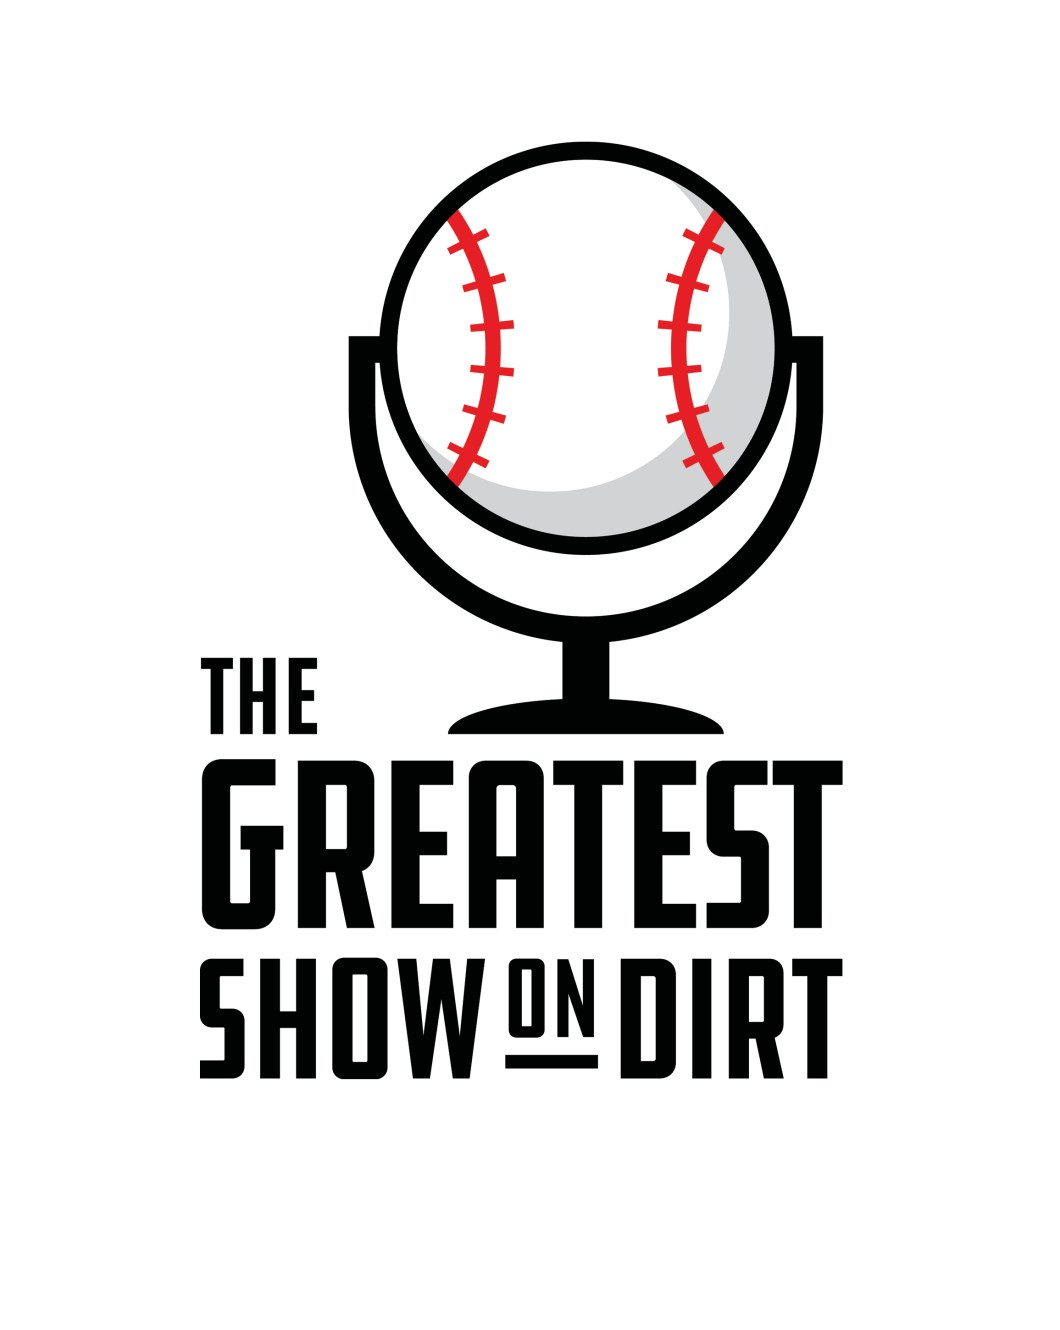 new-for-web3Greatest-Show-on-Dirt